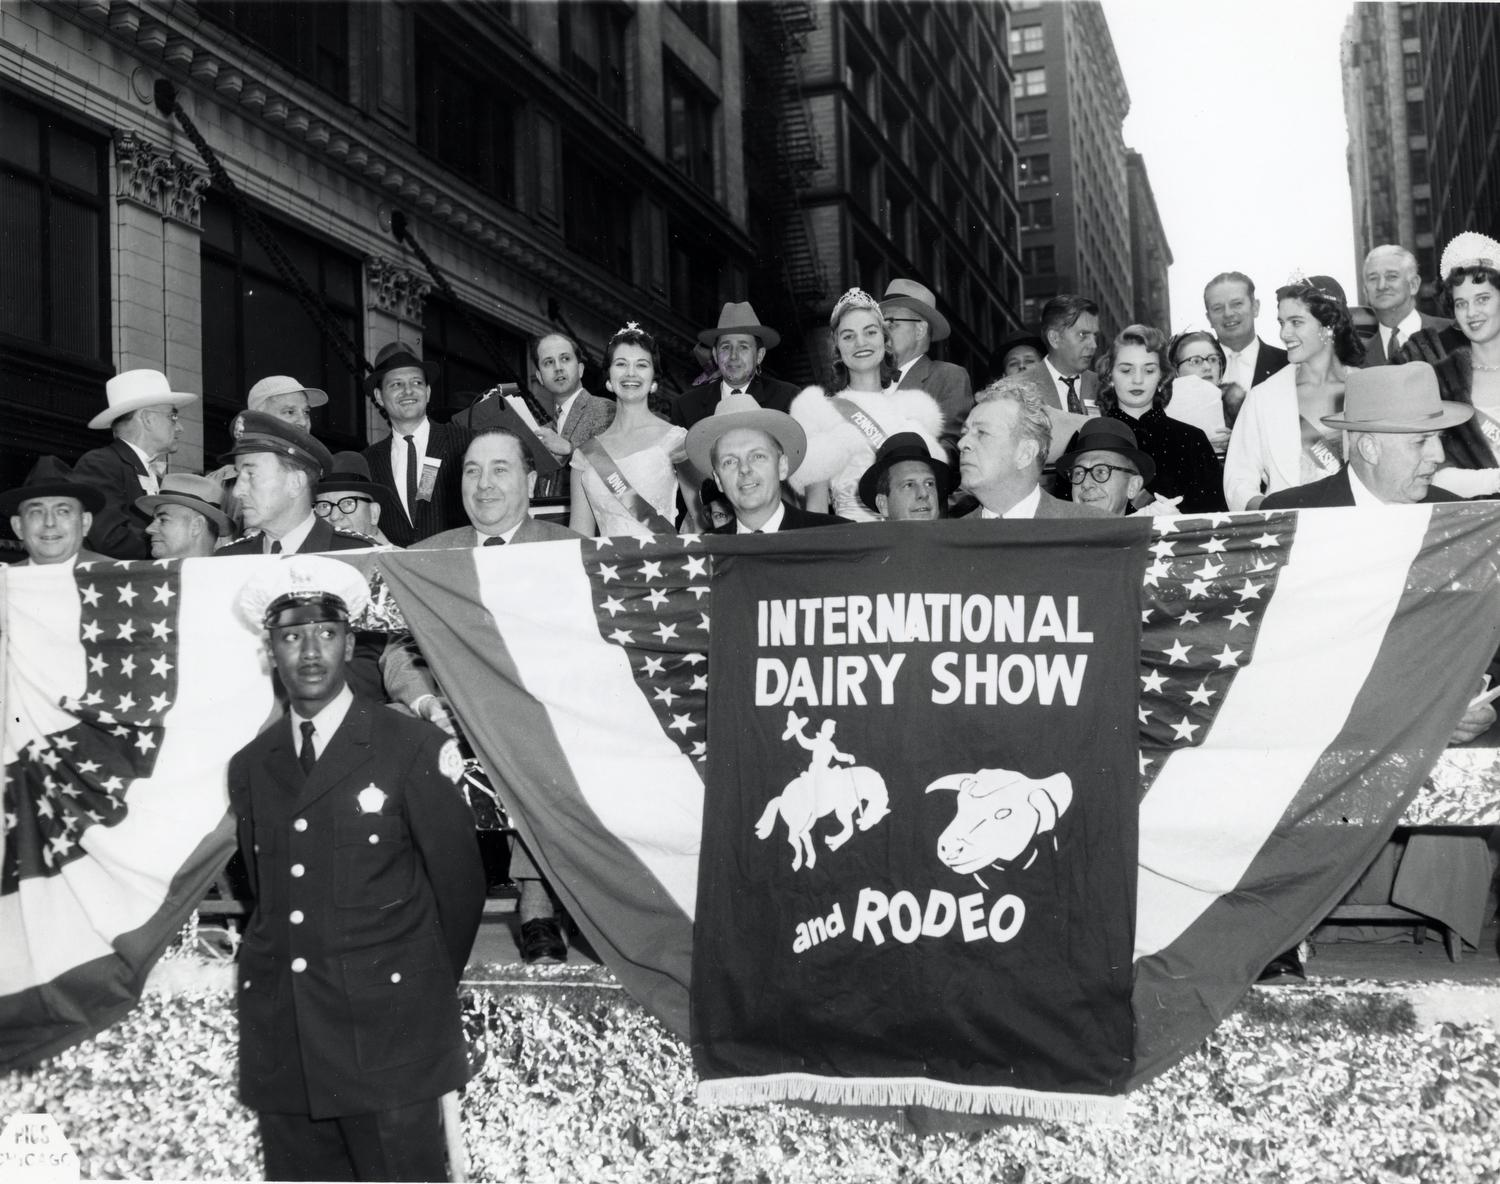 At the International Dairy Show and Rodeo [part of Chicago's 120th Anniversary Celebration].